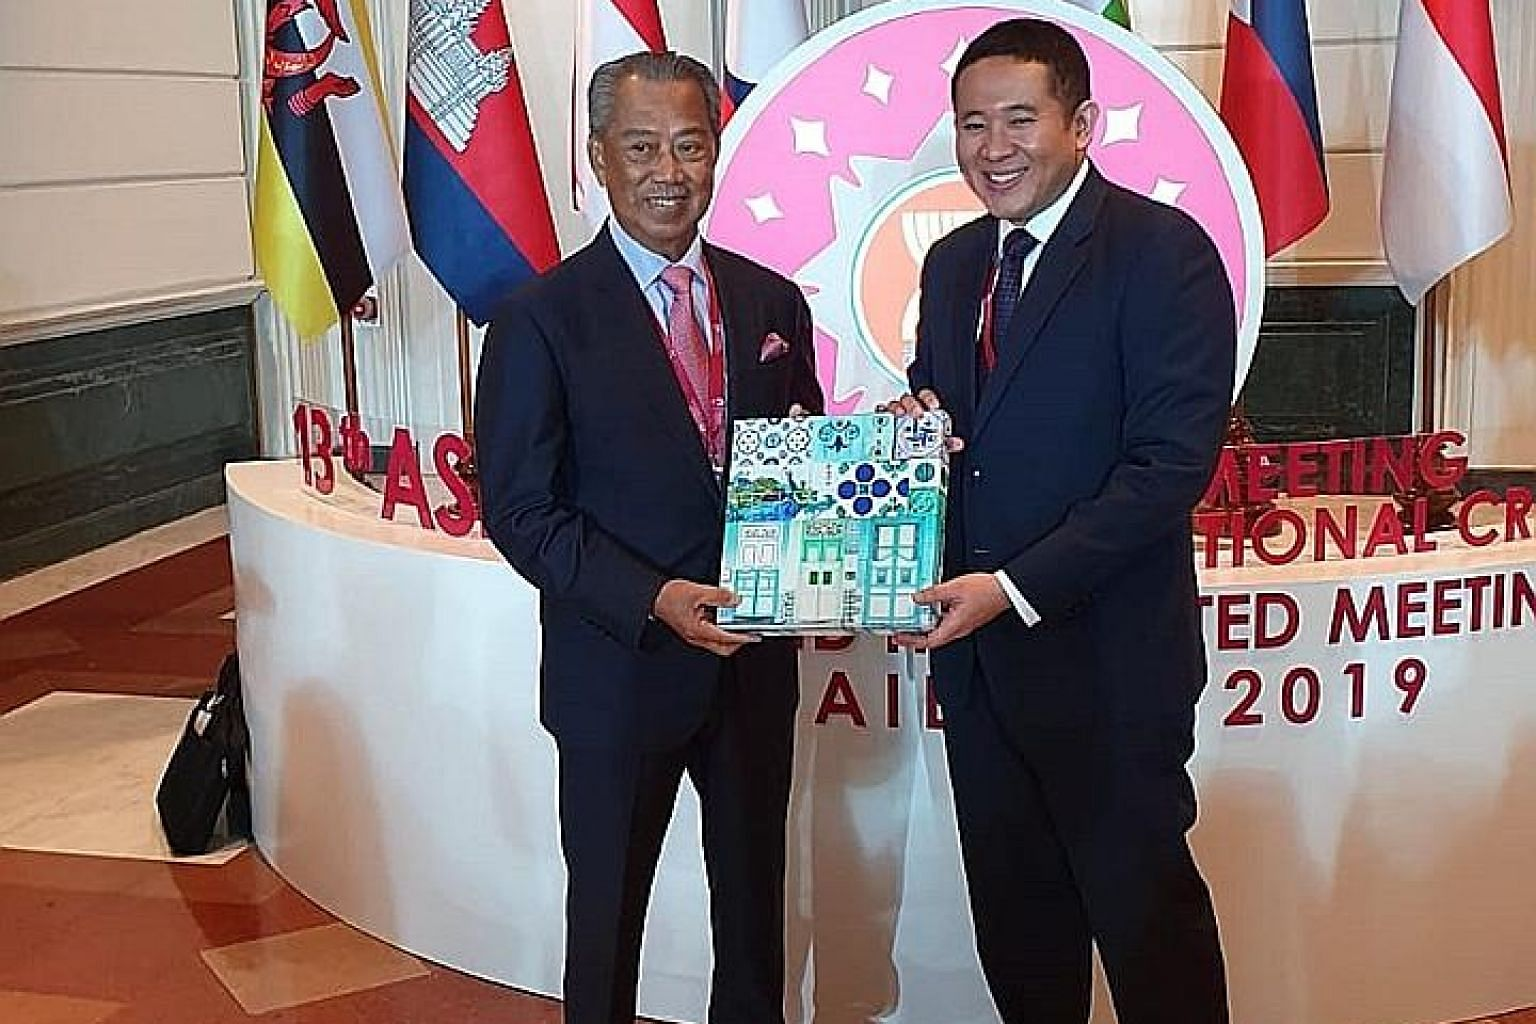 Senior Parliamentary Secretary for Health and Home Affairs Amrin Amin with Malaysia's Home Minister Muhyiddin Yassin (far left) during the 13th Asean Ministerial Meeting on Transnational Crime in Bangkok yesterday. PHOTO: MINISTRY OF HOME AFFAIRS